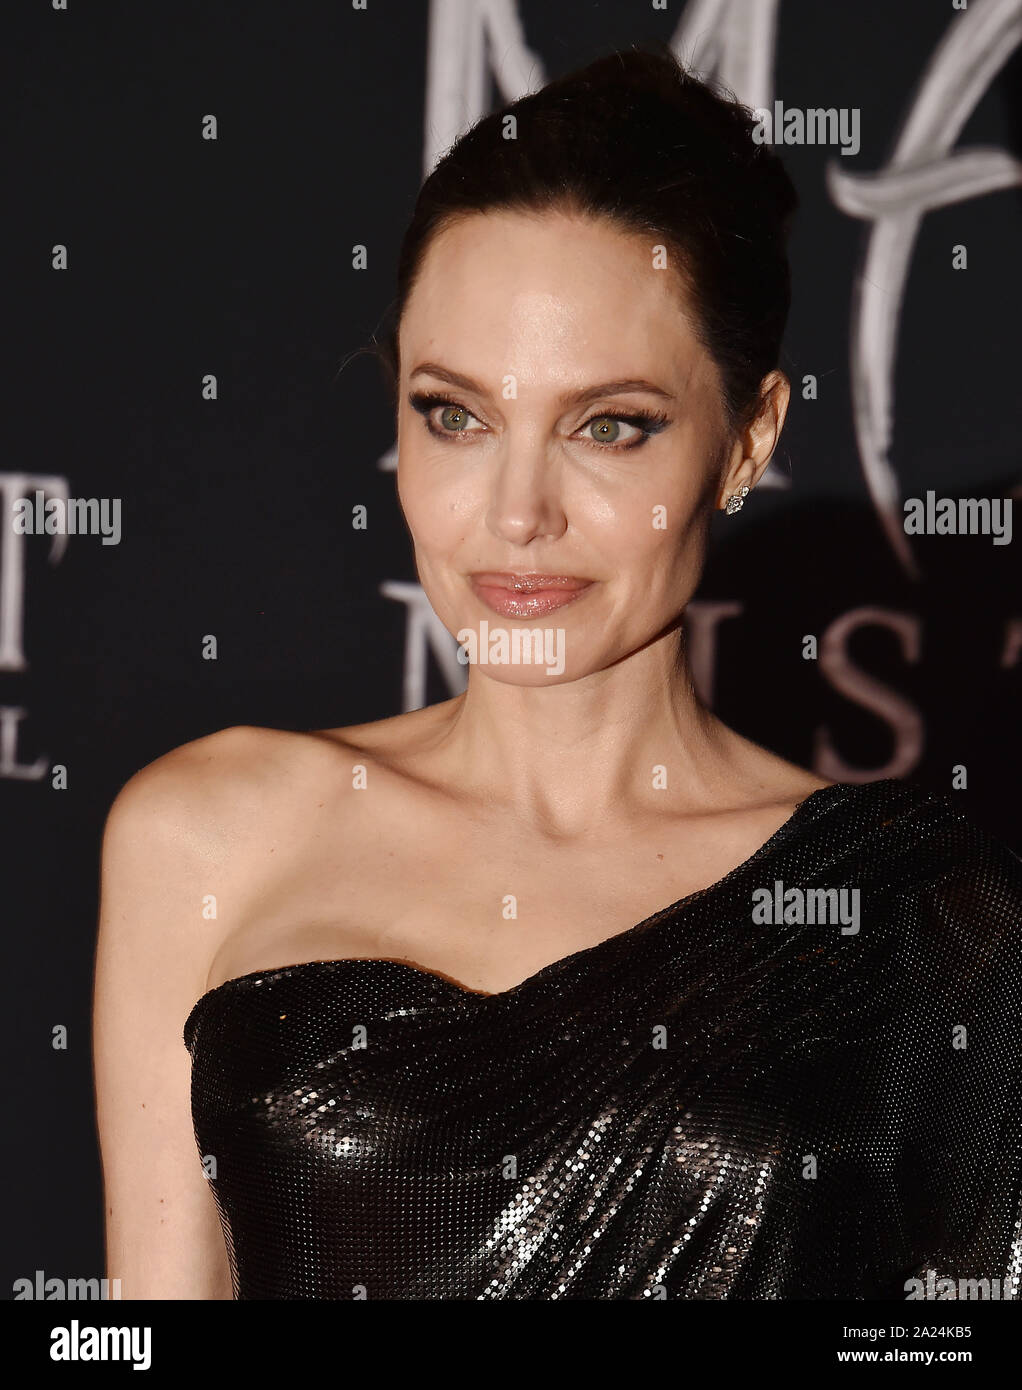 Hollywood Ca September 30 Angelina Jolie Attends The